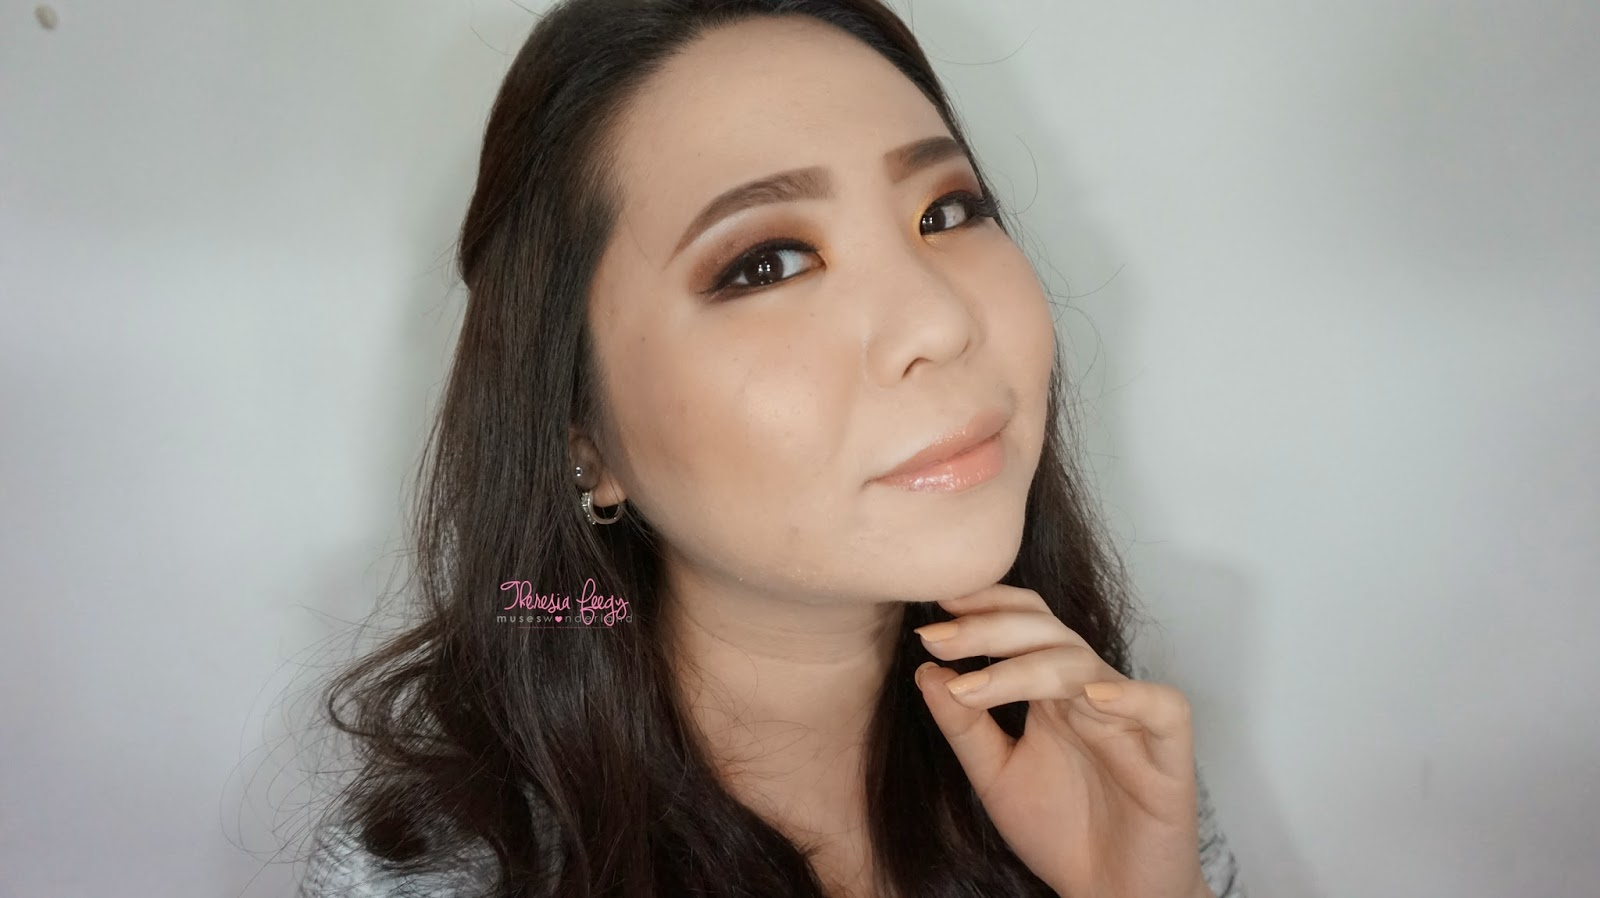 A natural gold with a warm maroon for a day to day basis. Products used are nyx jumbo eye pencil in milk, lavie lash, anastasia beverly hills on the brow, makeover in everlasting kiss, sleek face form in light, sariayu and kji & co tokyo, sariayu 25th anniversary palette.